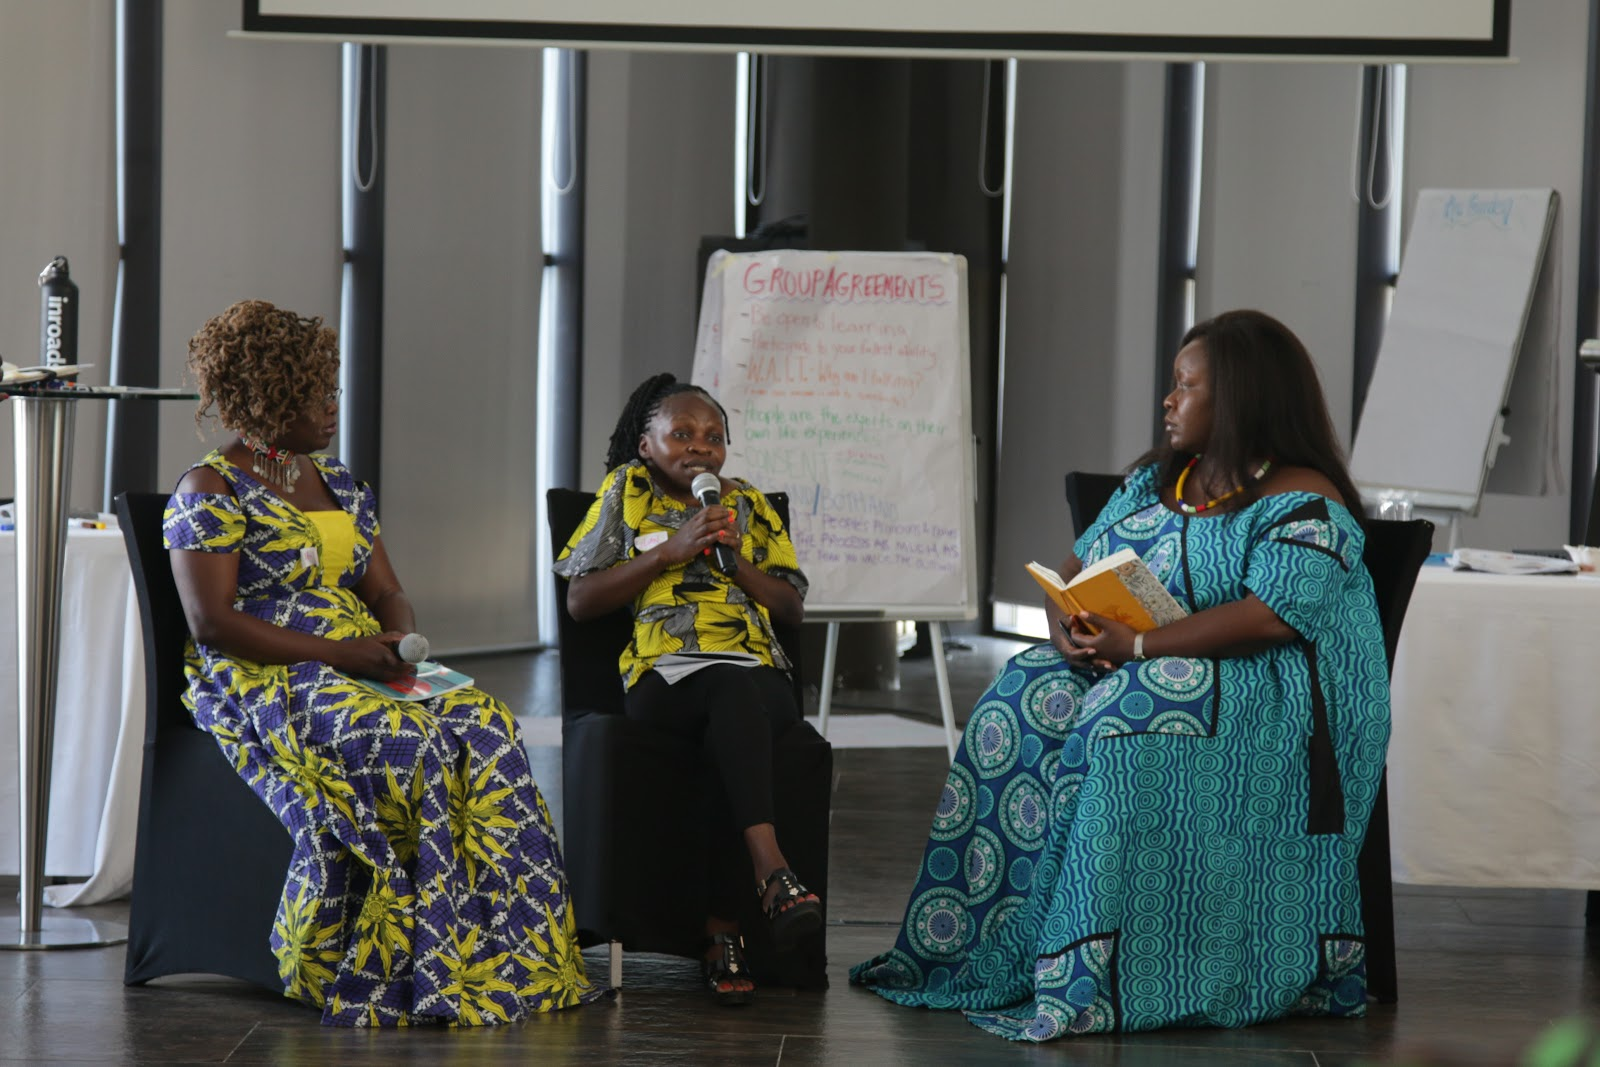 Kenyan members Jade, Phyllis and Lilian share with members the Kenyan context around stigma busting